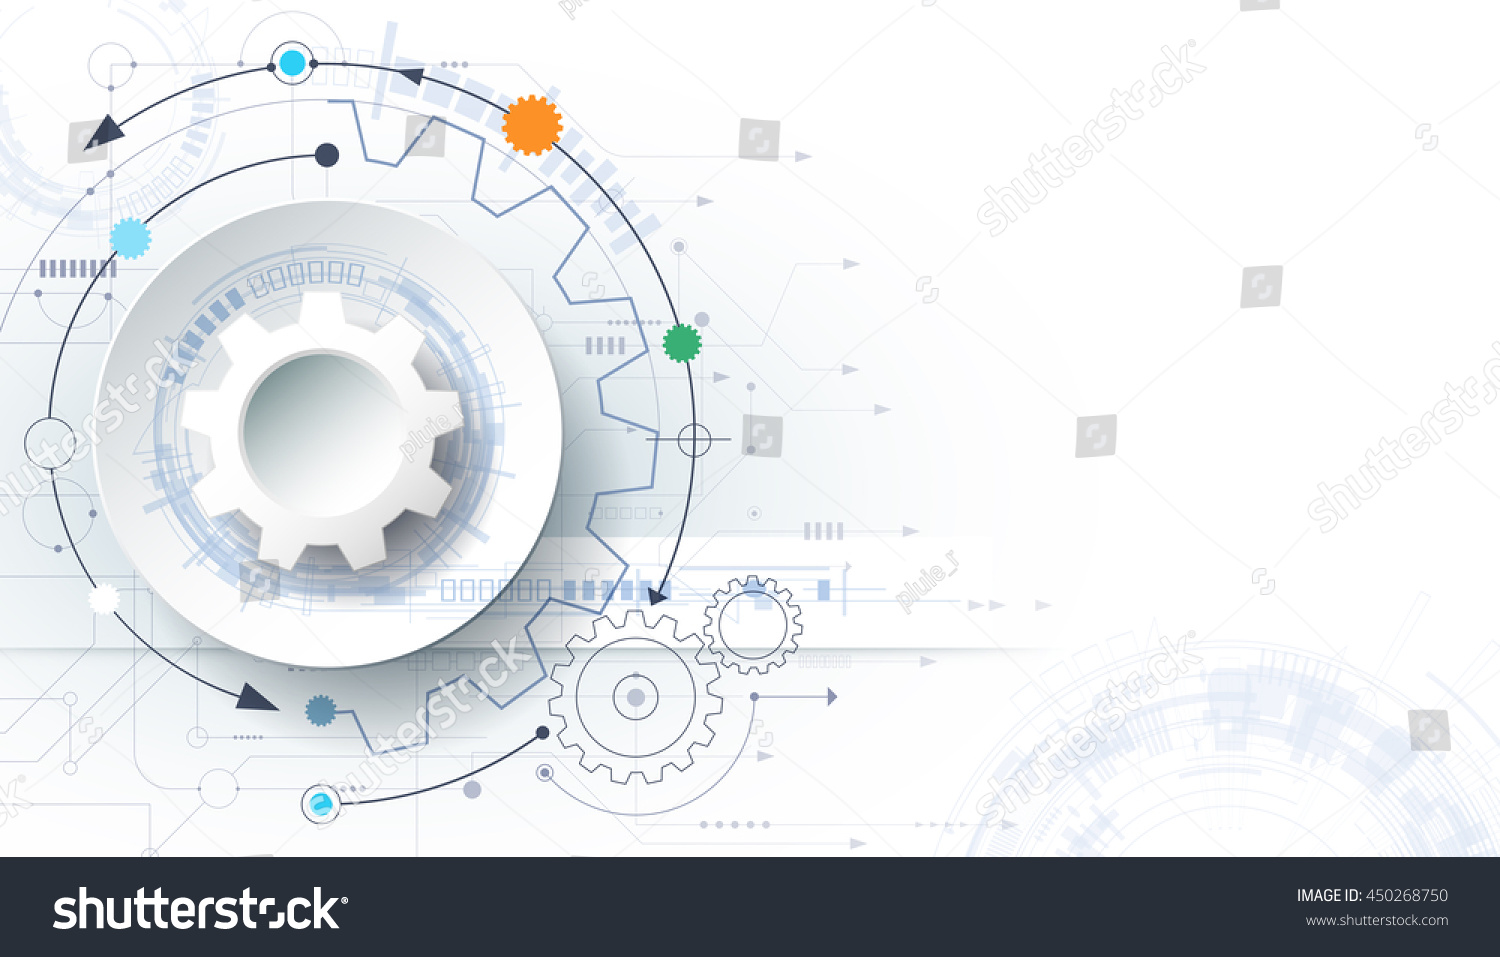 royalty-free vector futuristic technology background… #450268750, Presentation templates